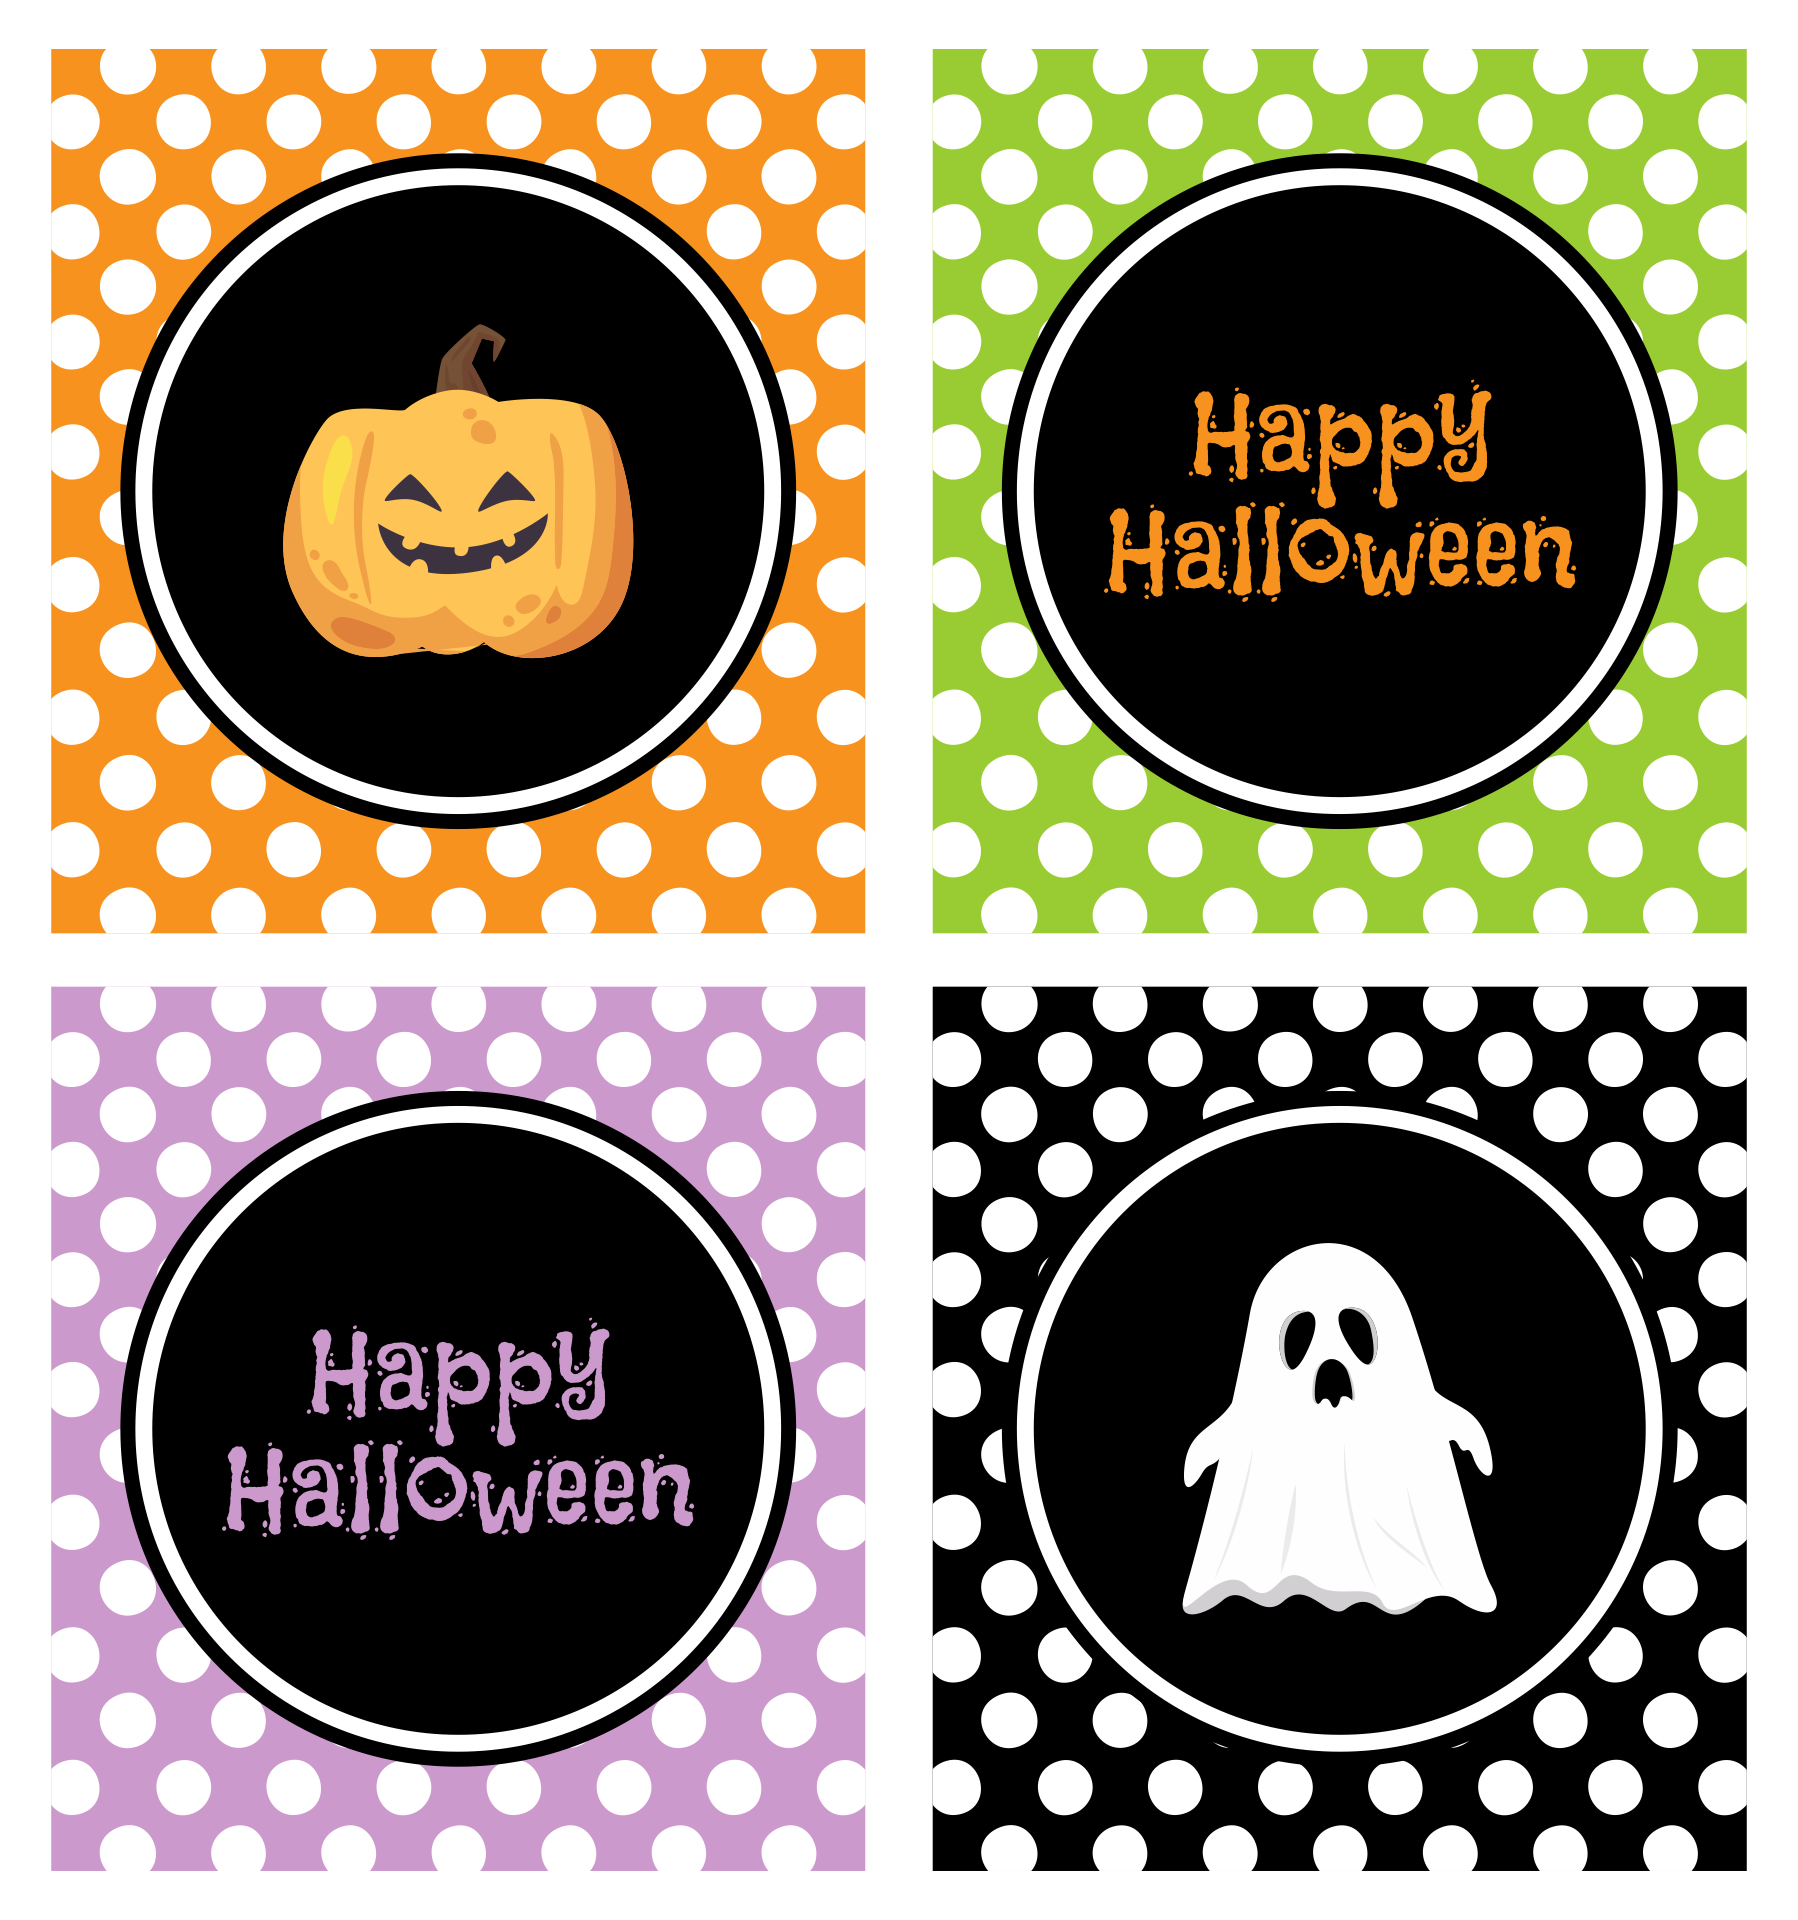 7 Images of Happy Halloween Free Printable Labels